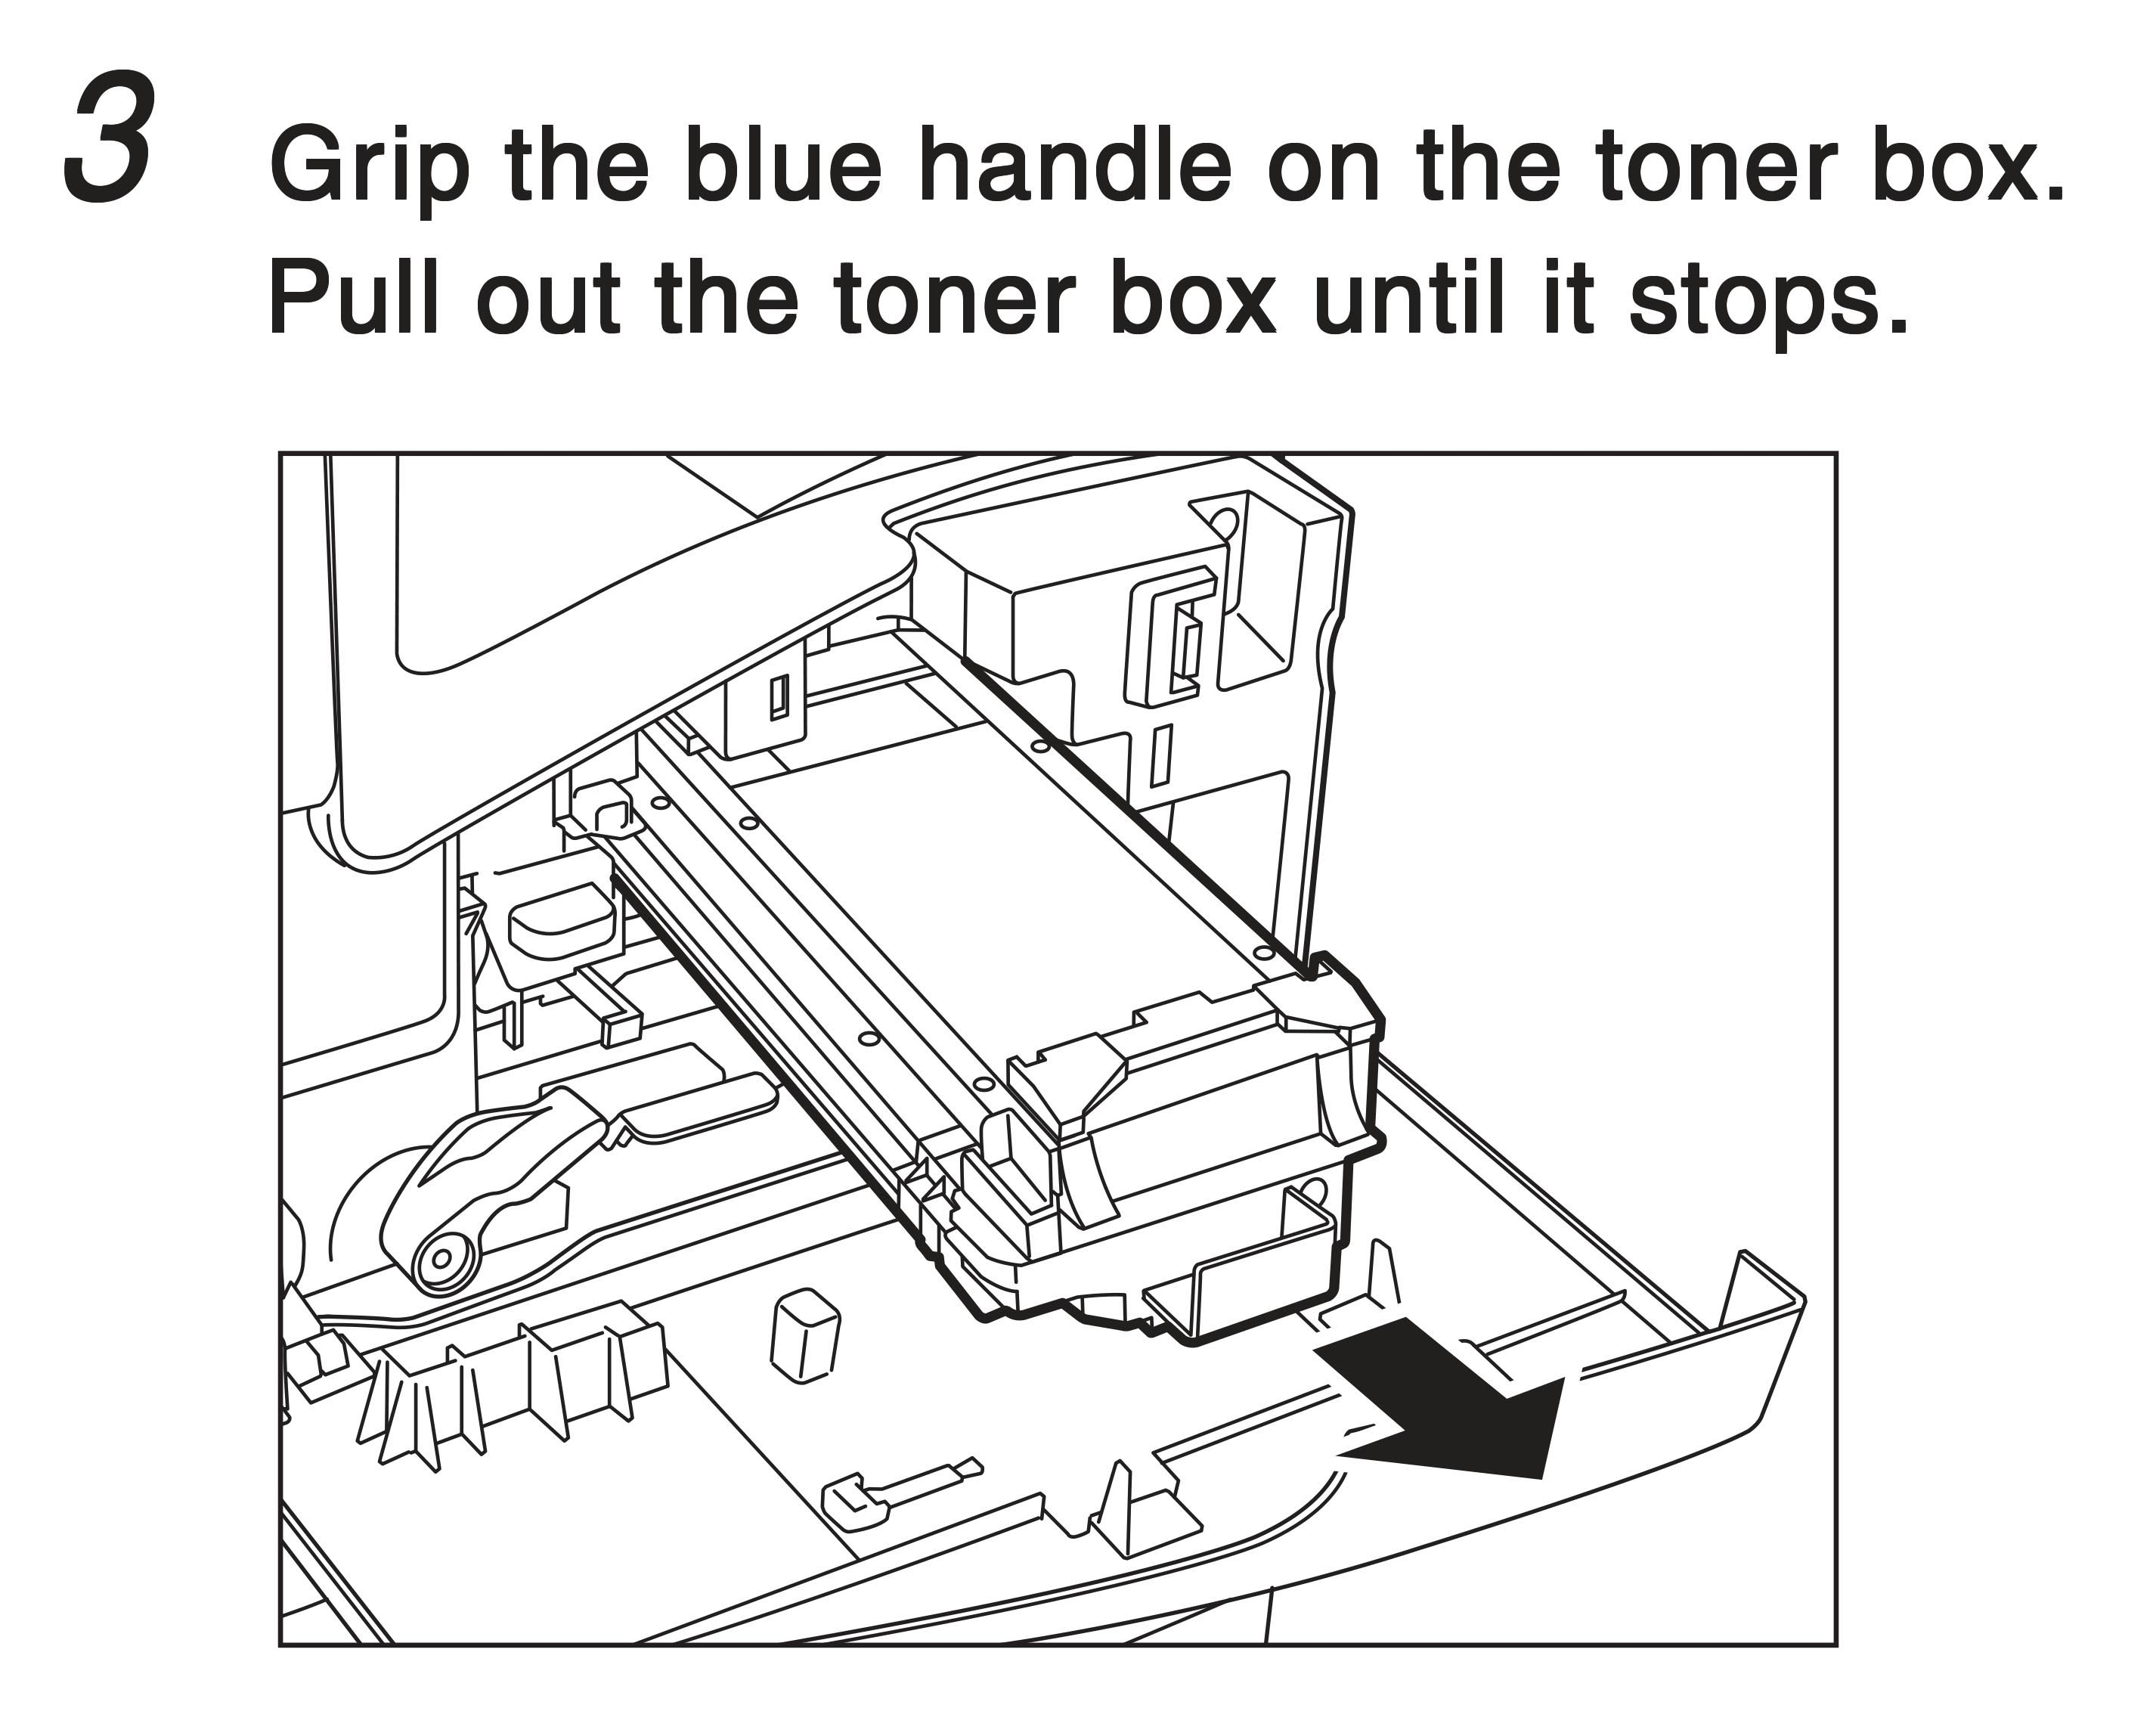 3. Grip the blue handle on the toner box. Pull out the toner box until it stops.